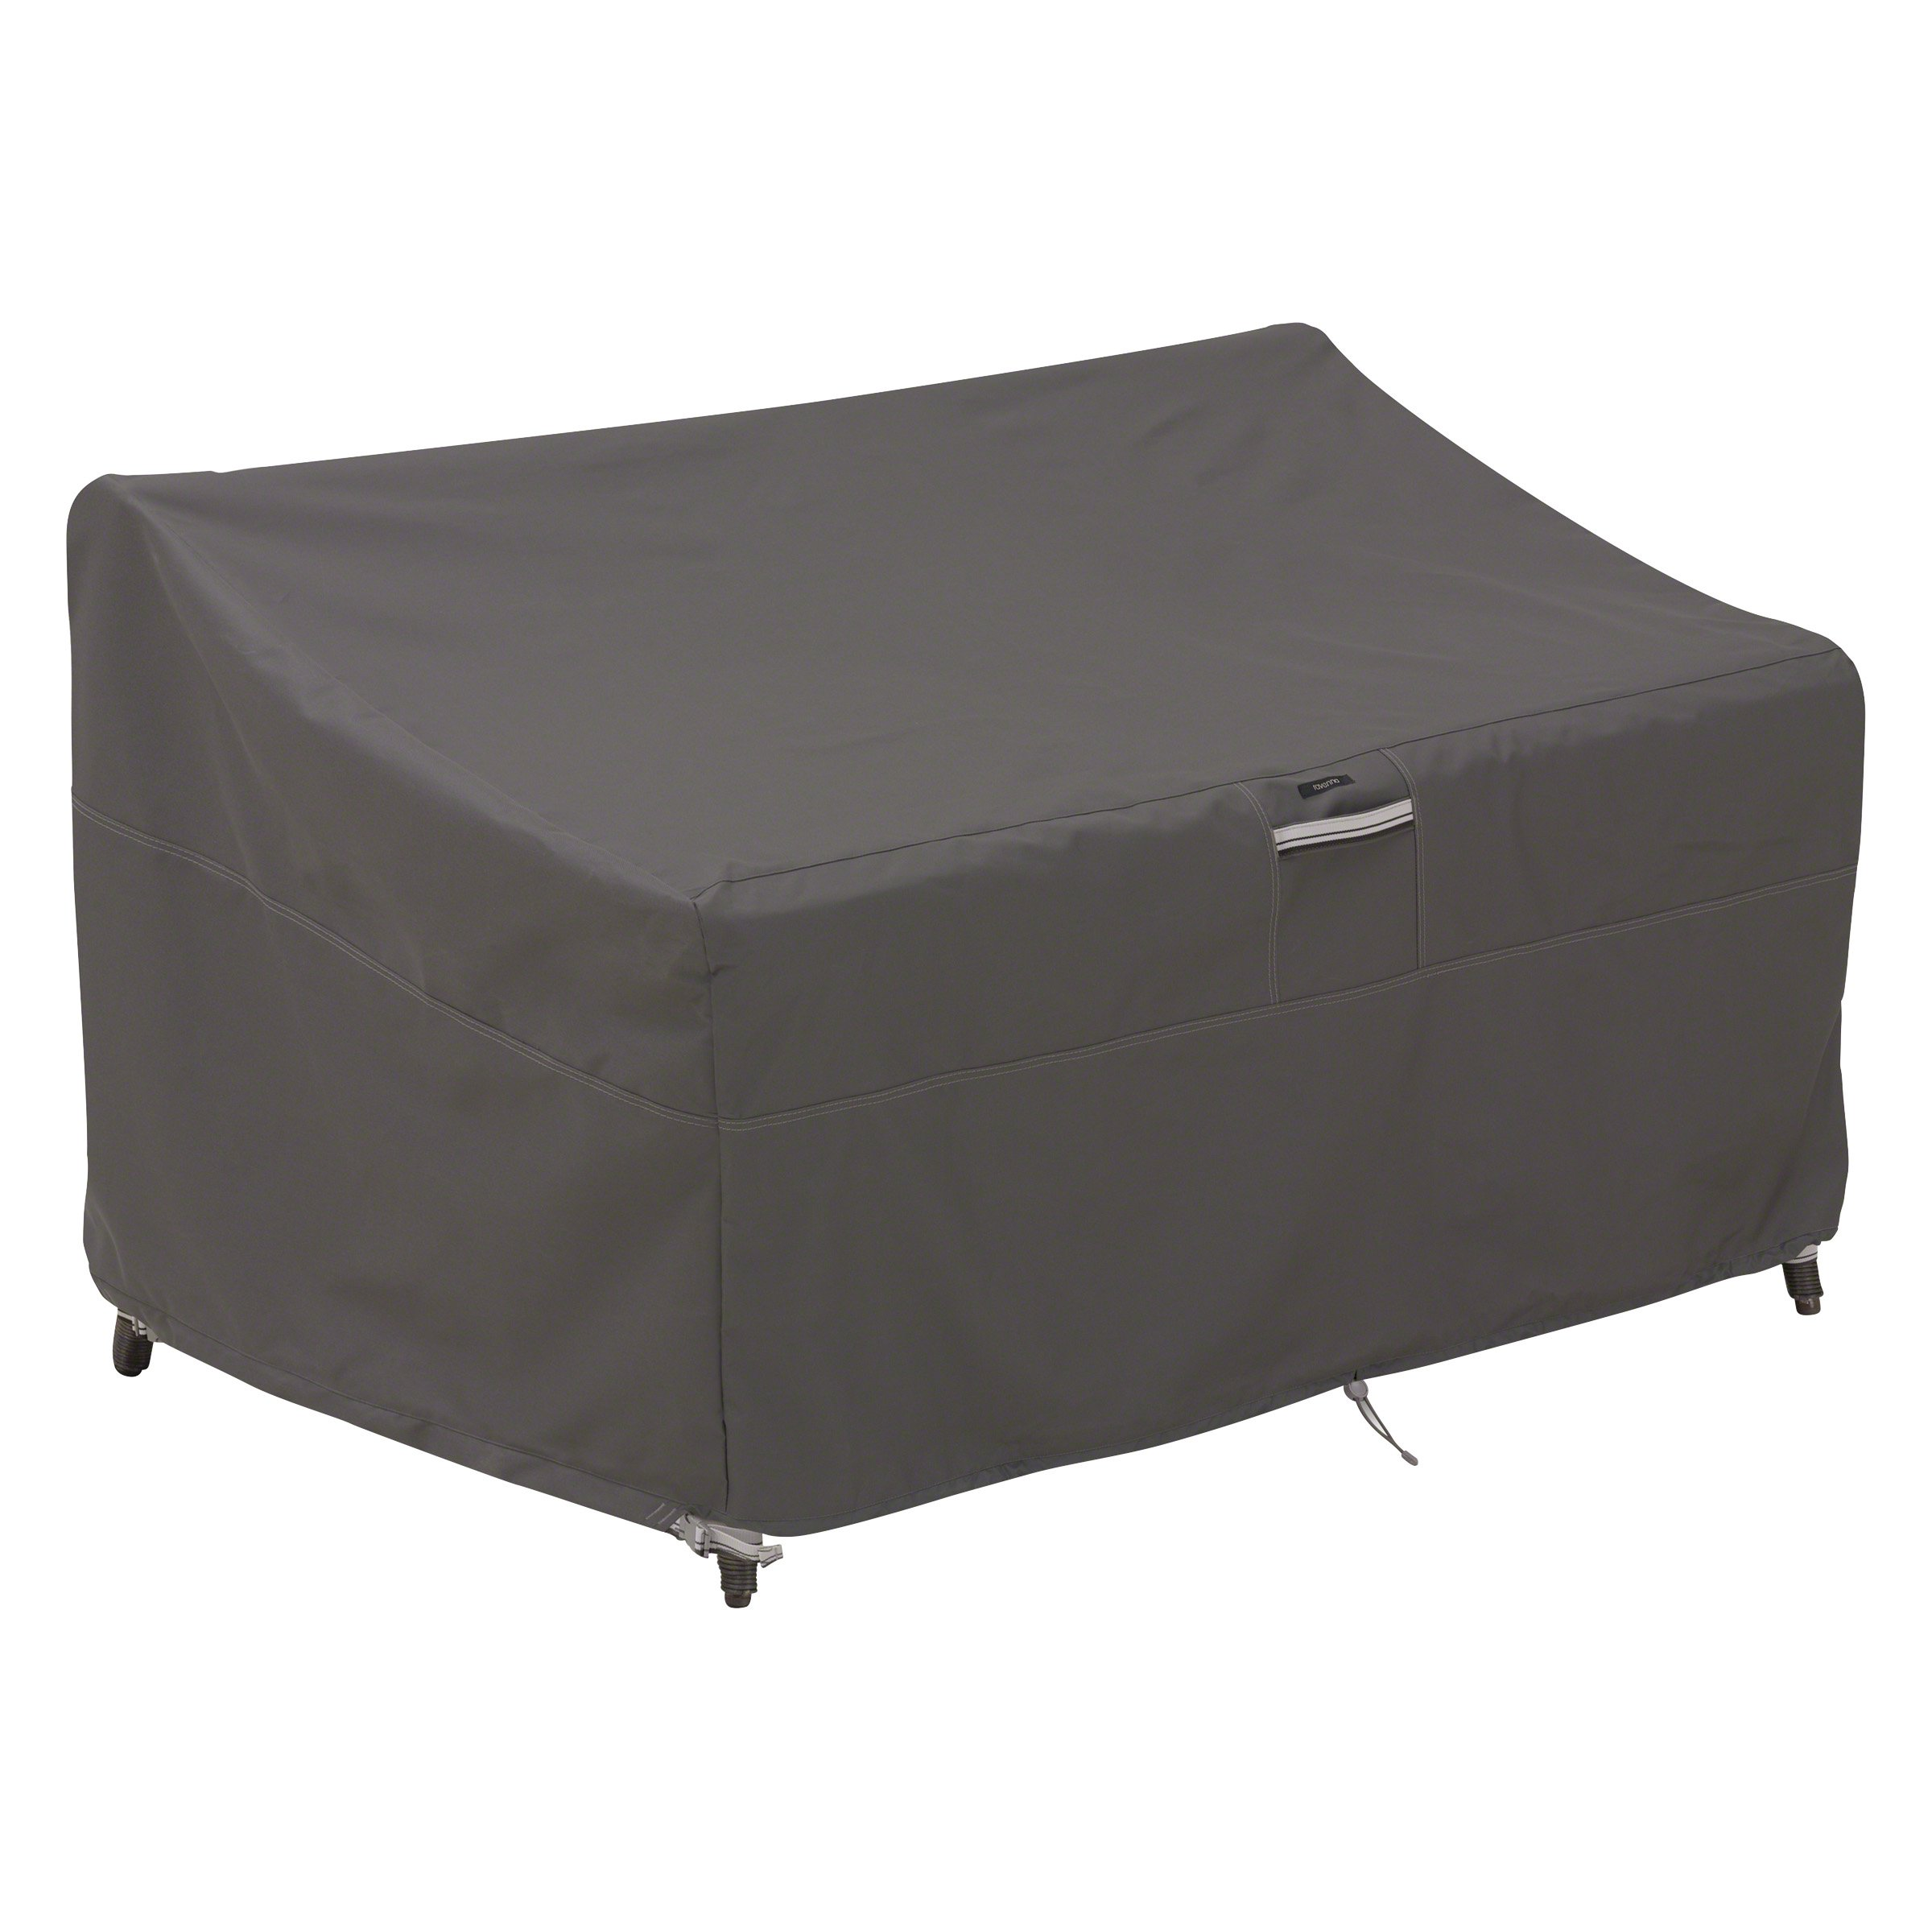 Classic Accessories Ravenna Deep Seated Patio Loveseat Cover-Premium Outdoor Furniture Cover with Durable and Water Resistant Fabric, Medium (55-423-035101-EC) product image